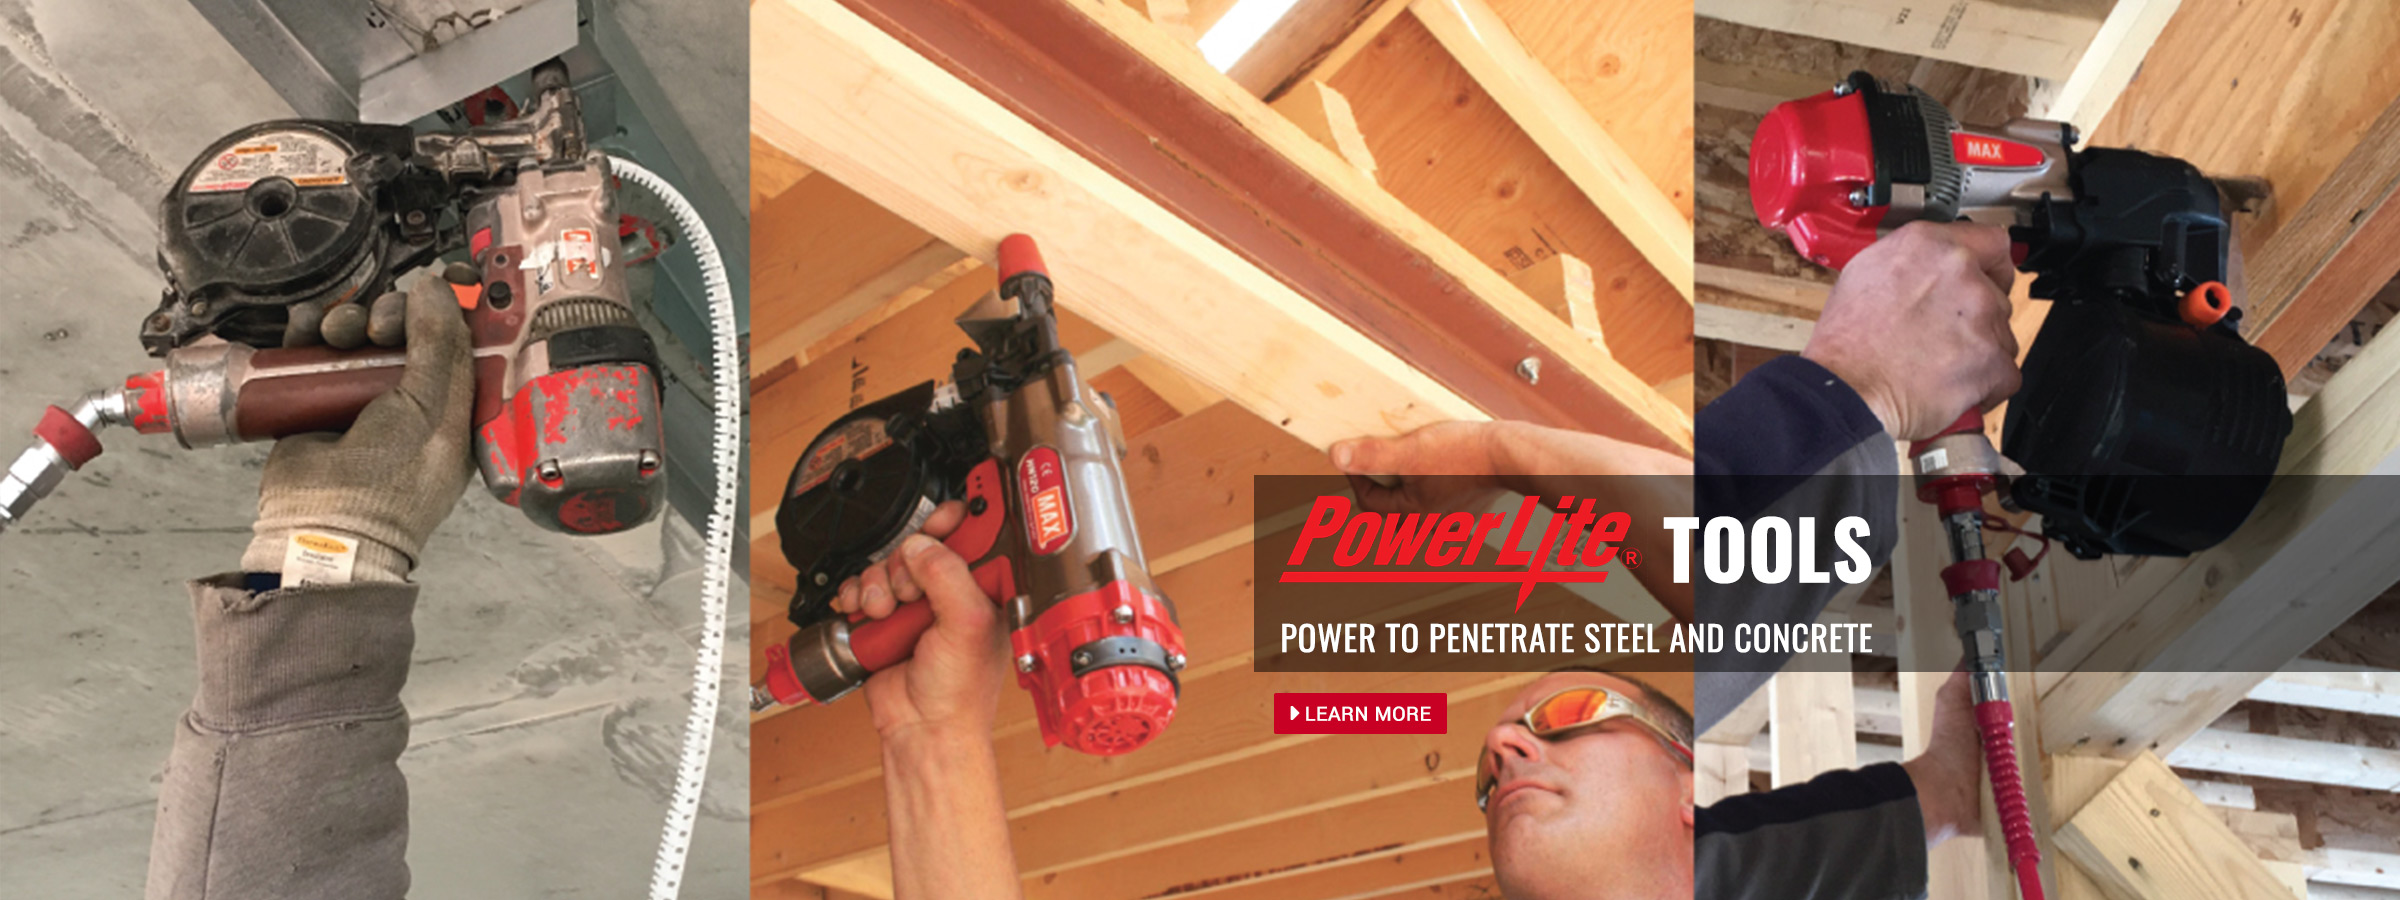 PowerLite Tools Power to Penetrate Steel and Concrete